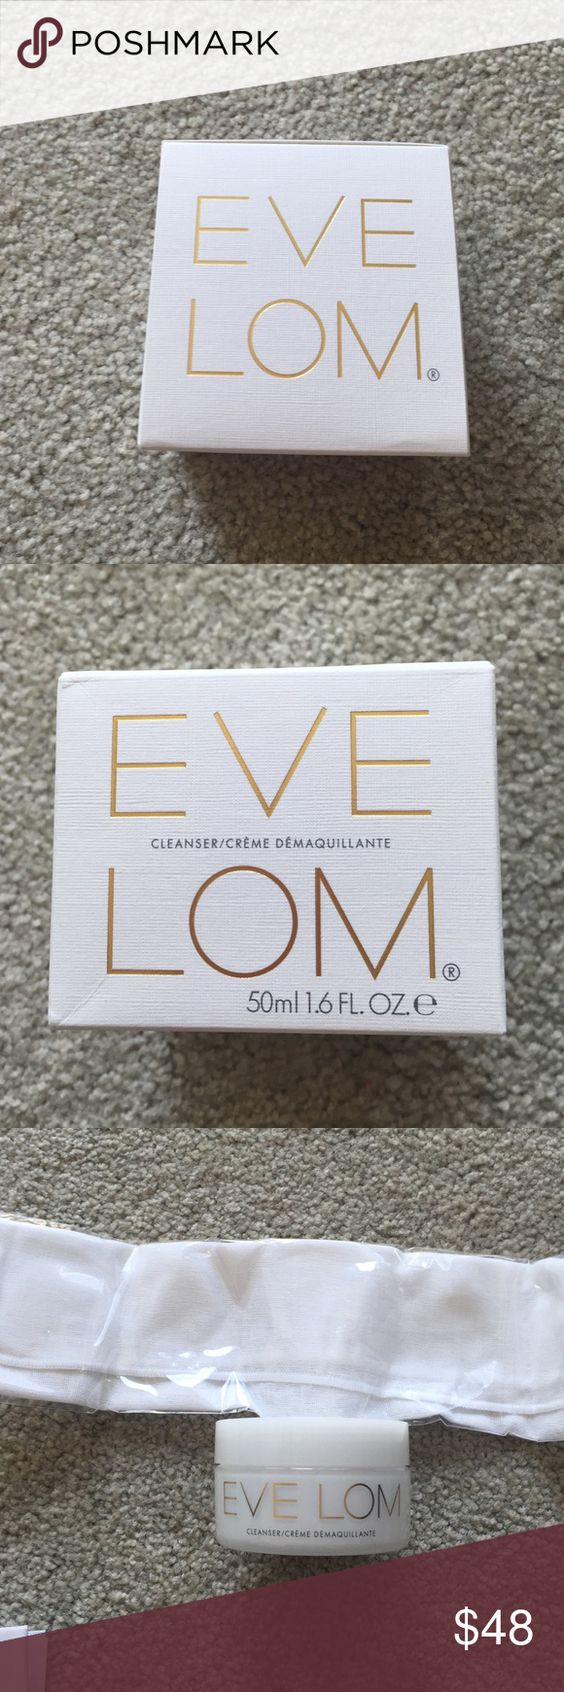 Eve lom cleanser Eve lom cleanser. Never been used. Comes with mutton cloth in original box. 1.6 oz Makeup